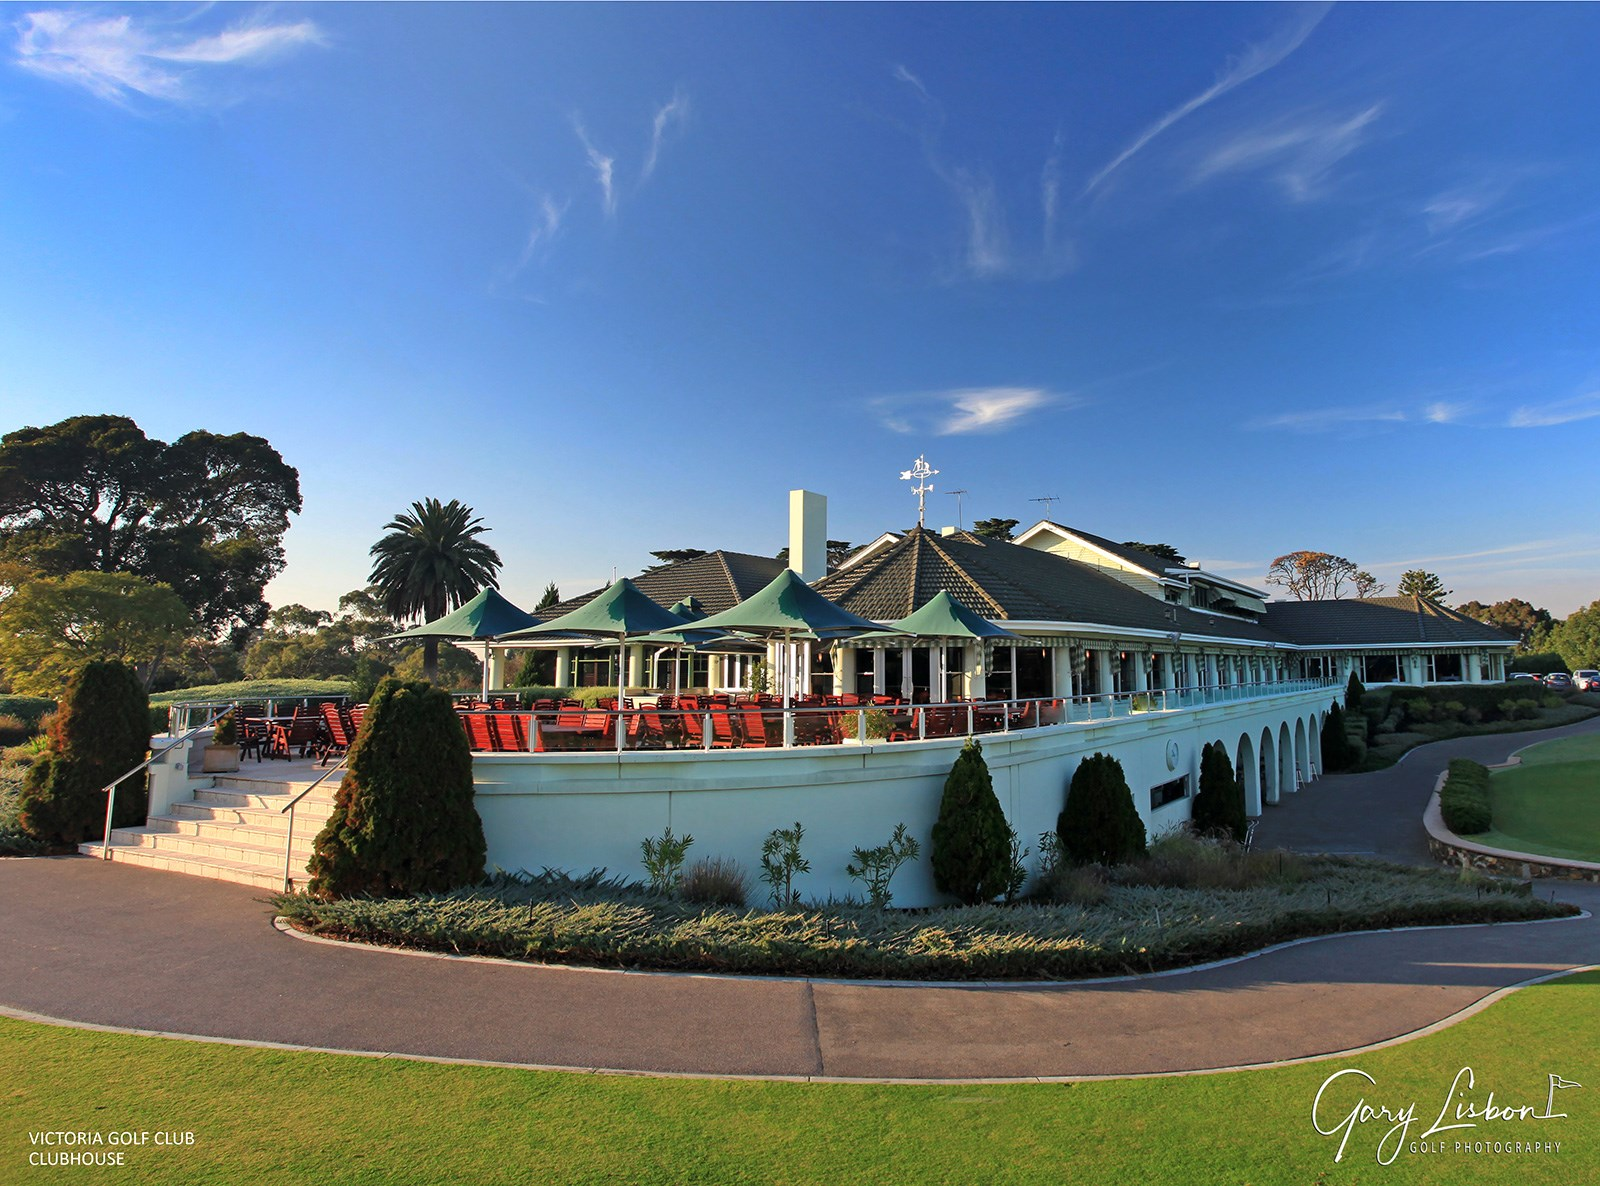 Victoria Golf Club Clubhouse